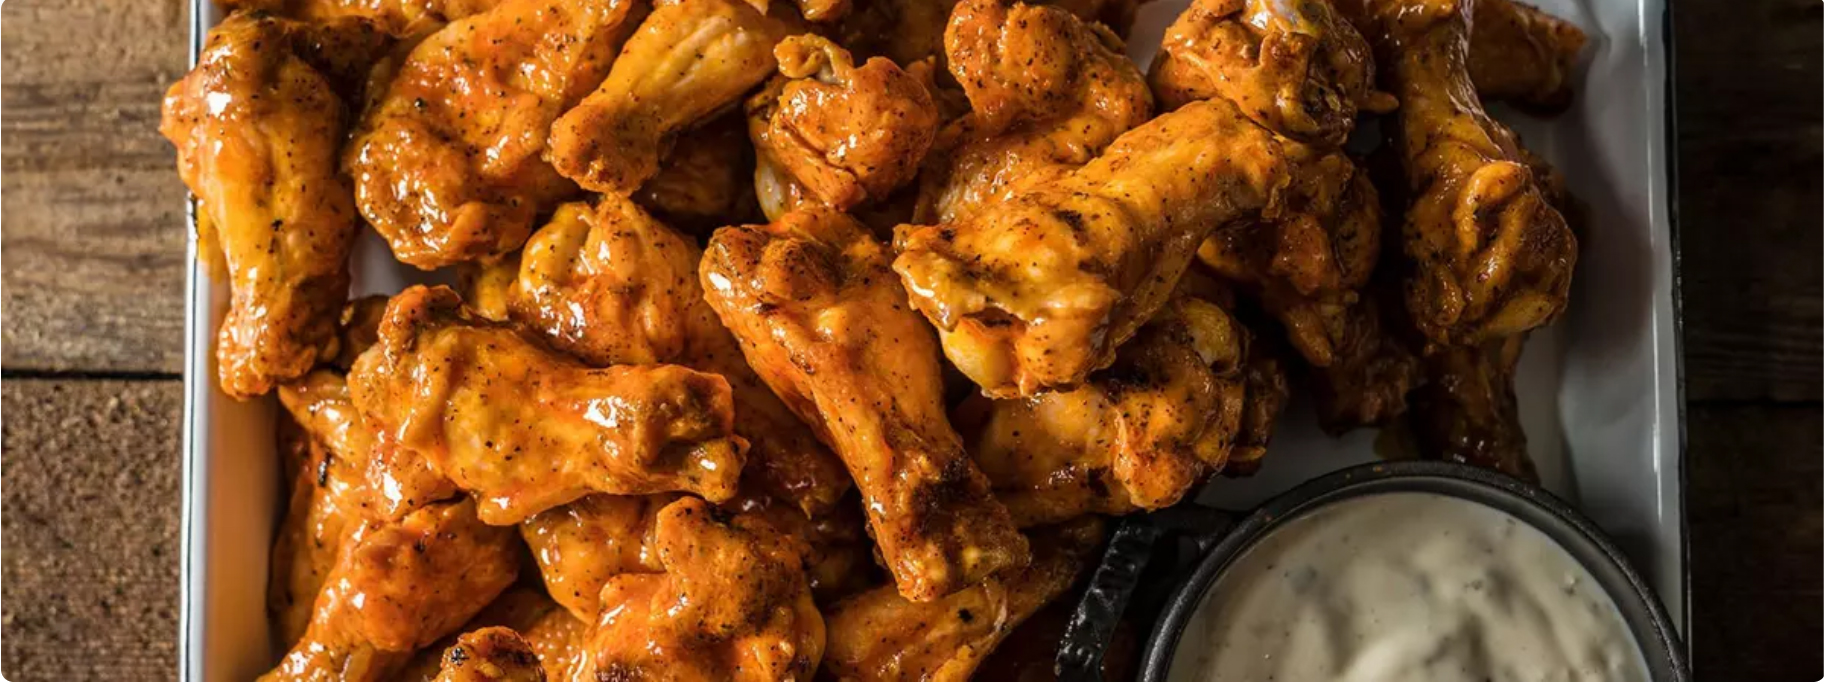 Smoked Chicken Wing Recipes